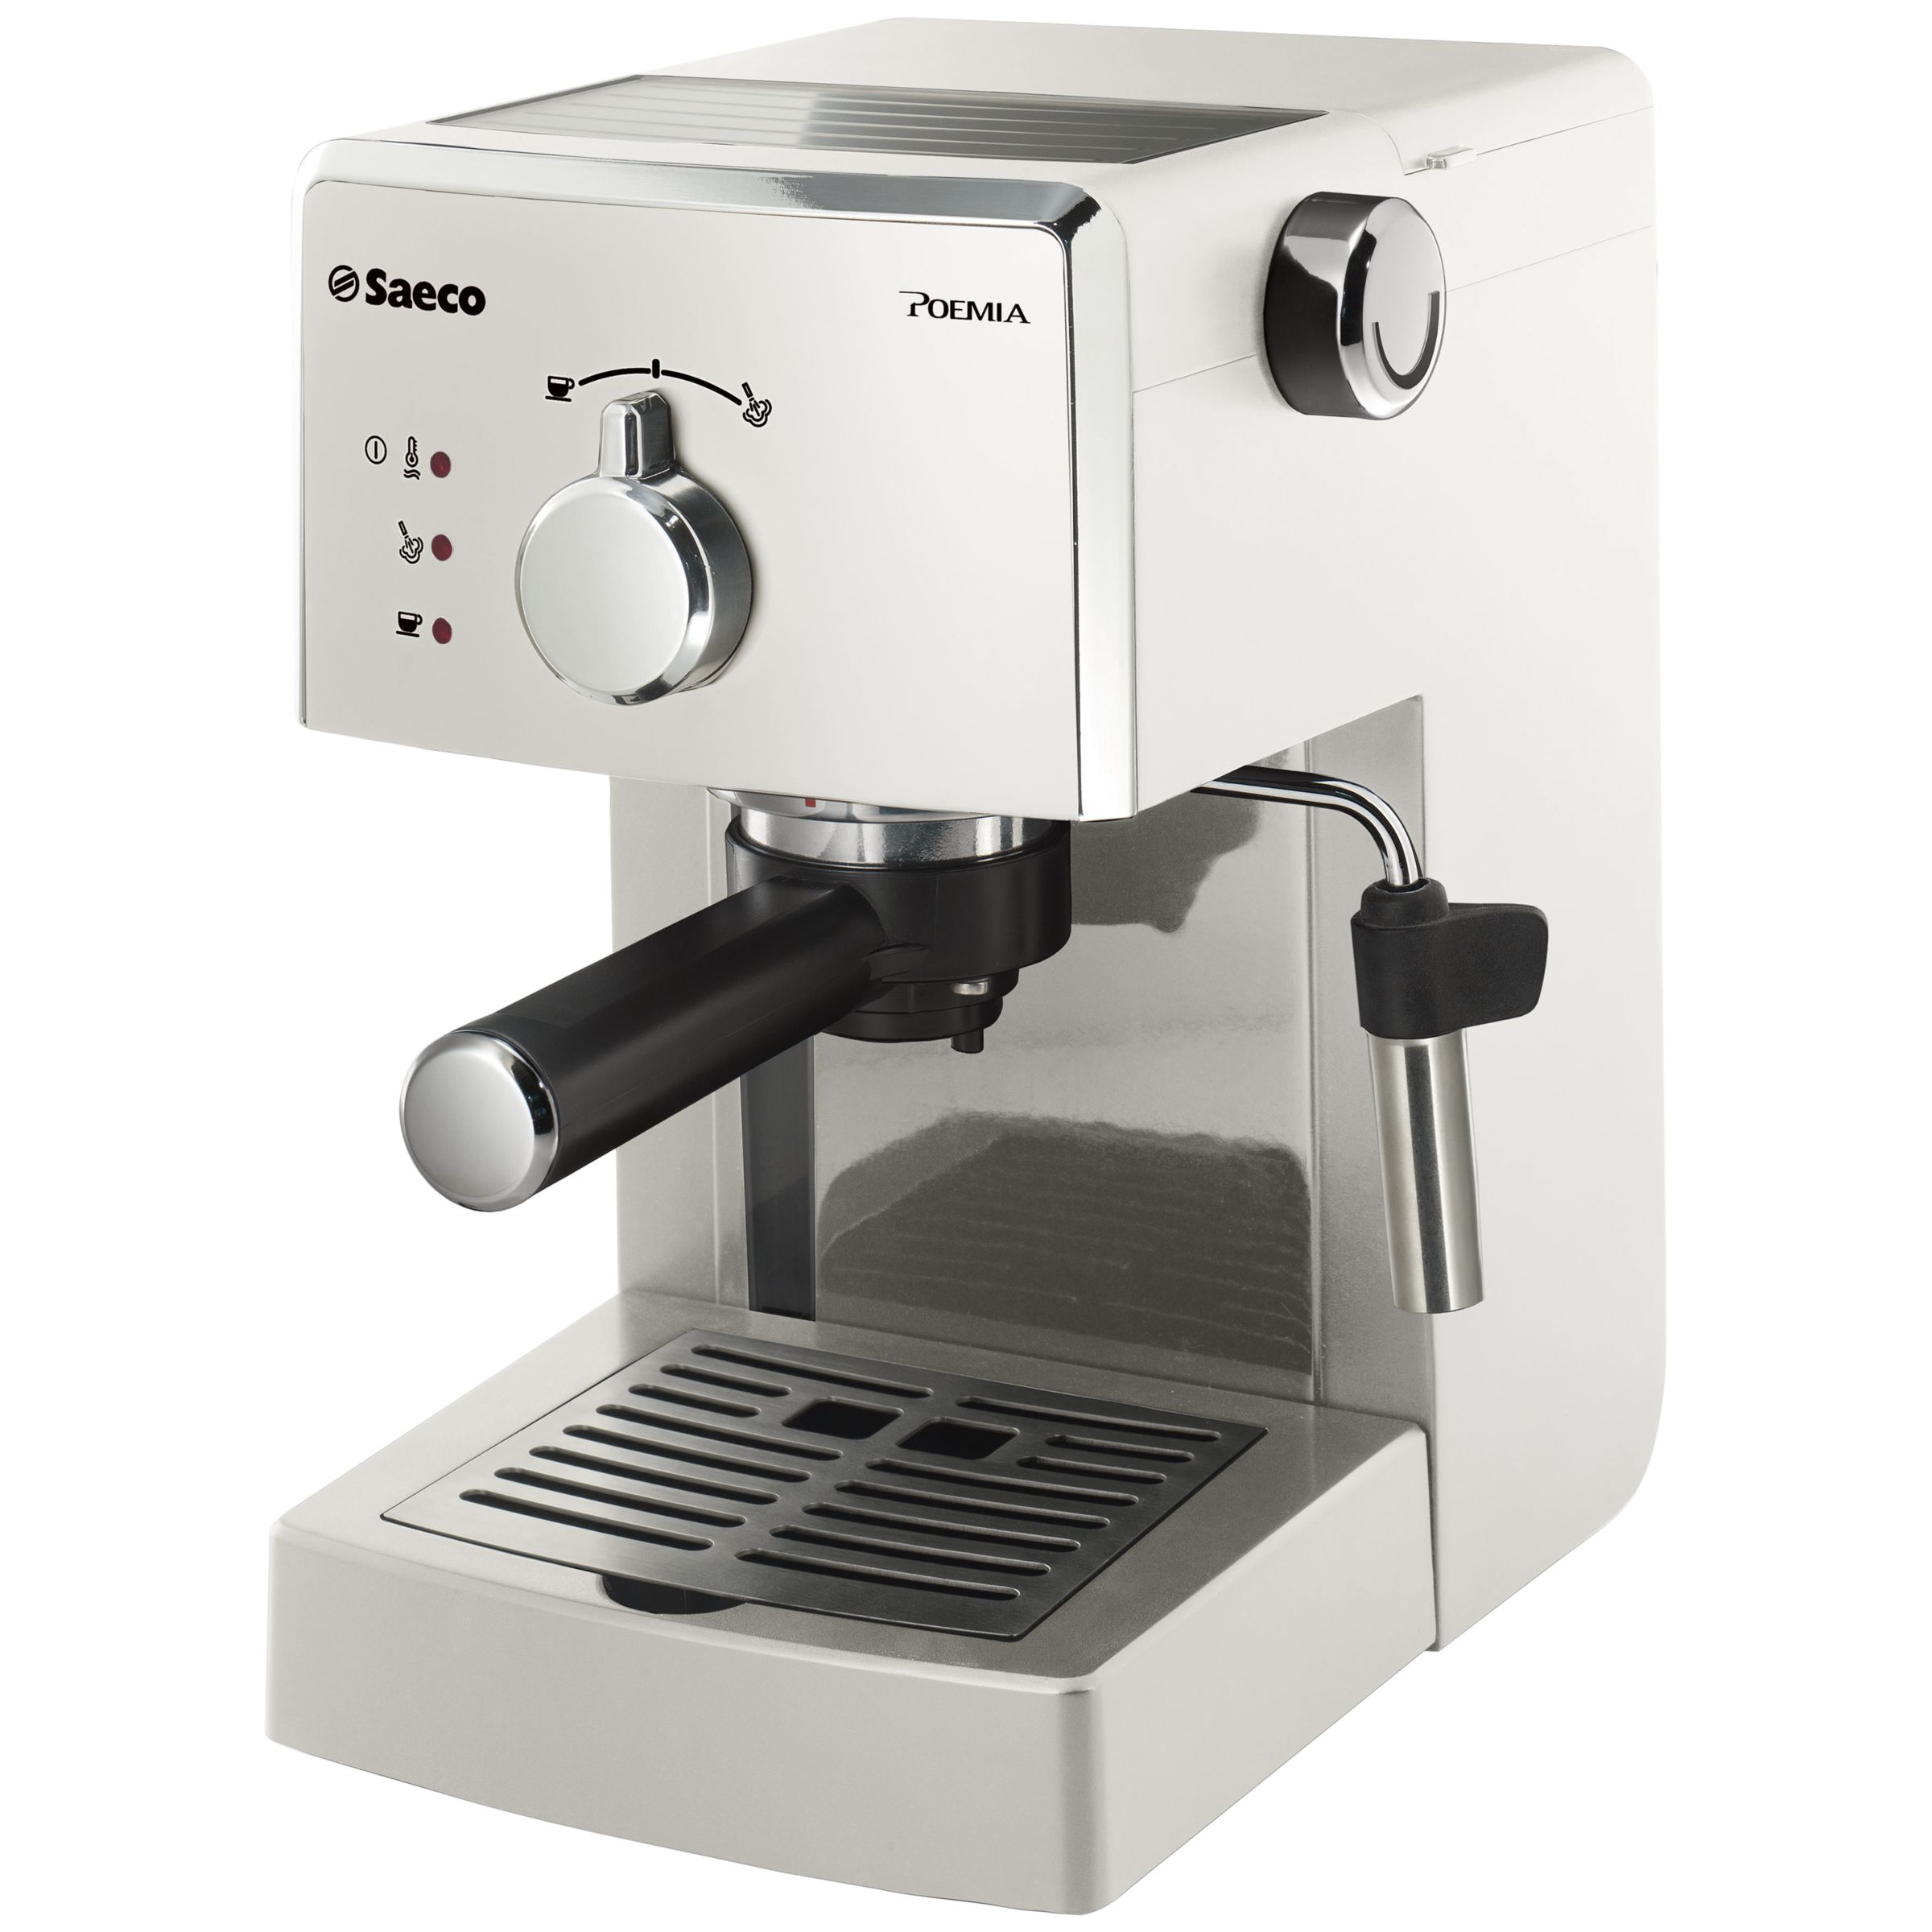 Italian Coffee Maker John Lewis : John Lewis Page not found